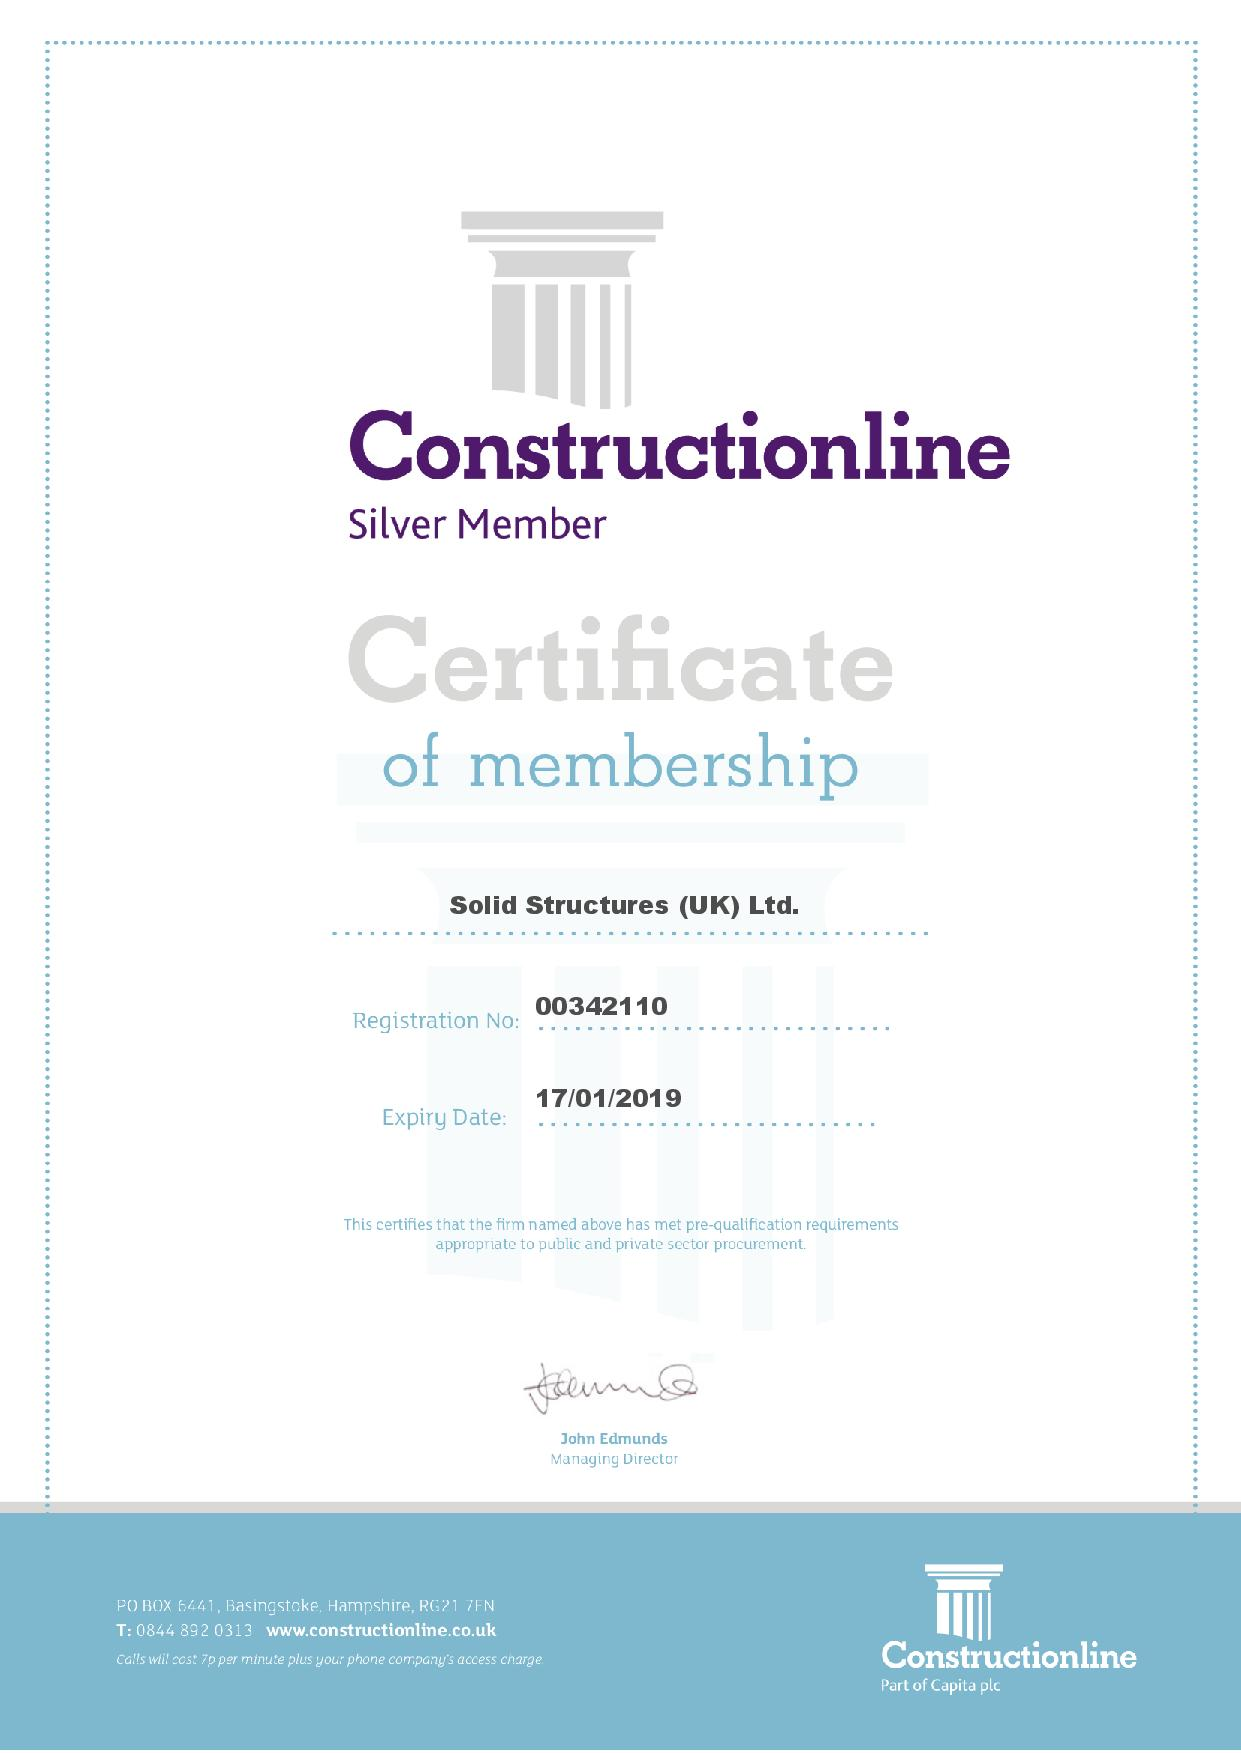 ConstructionlineCertificate.SolidStructures.2019.01.17 (1)-page-001.jpg